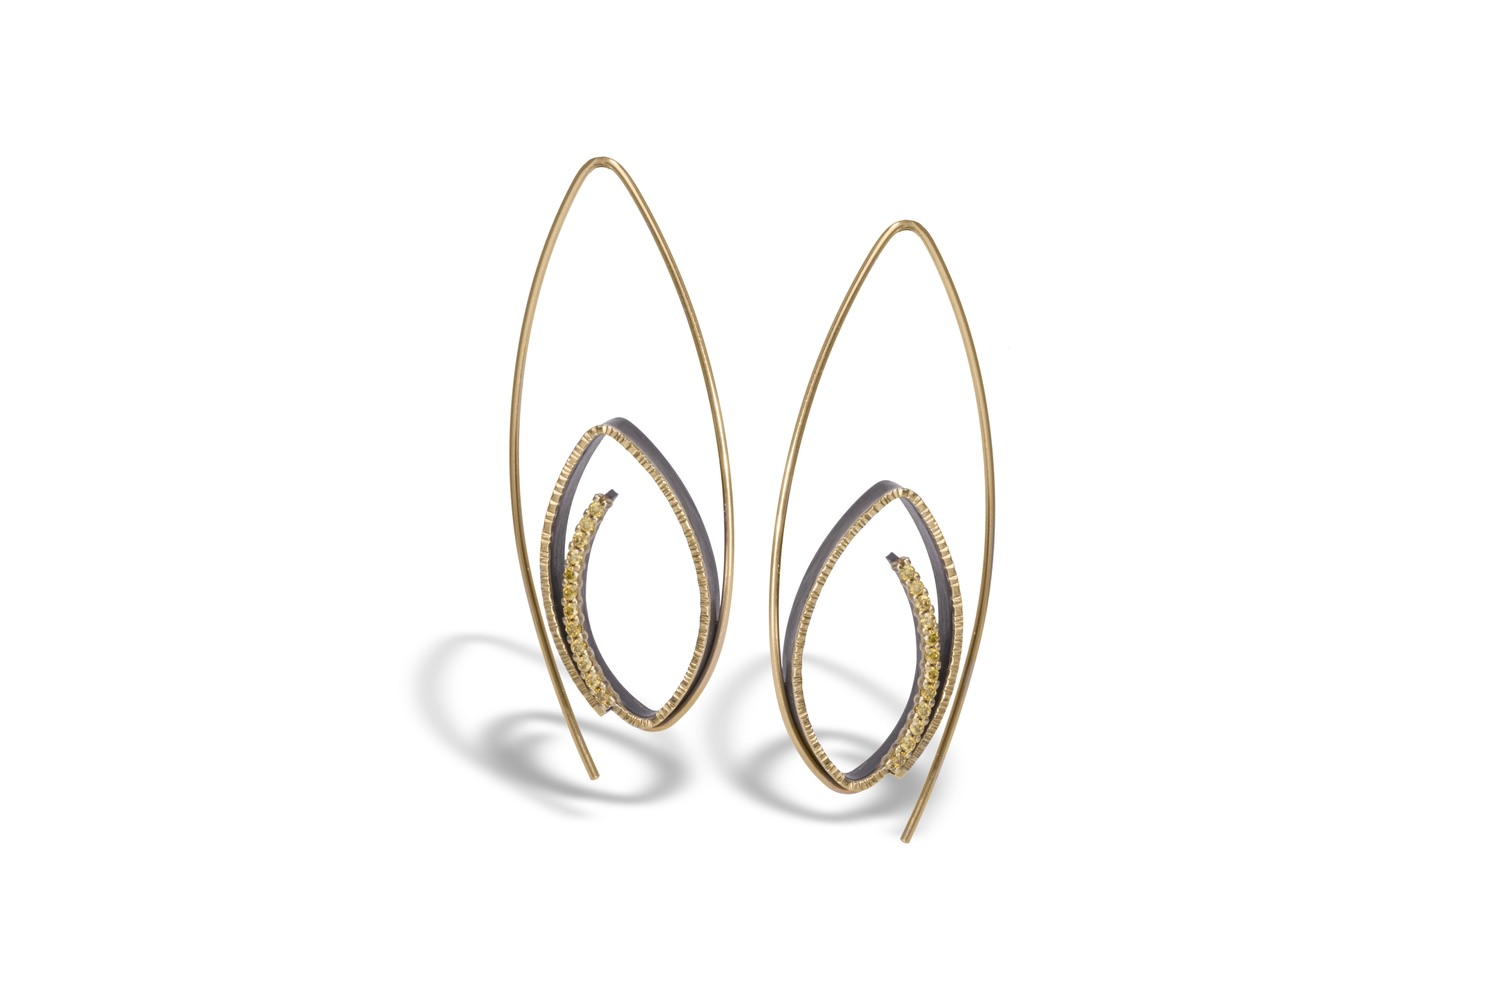 The Jewel - Elizabeth Garvin - Lookbook - Gold Swirl Earrings